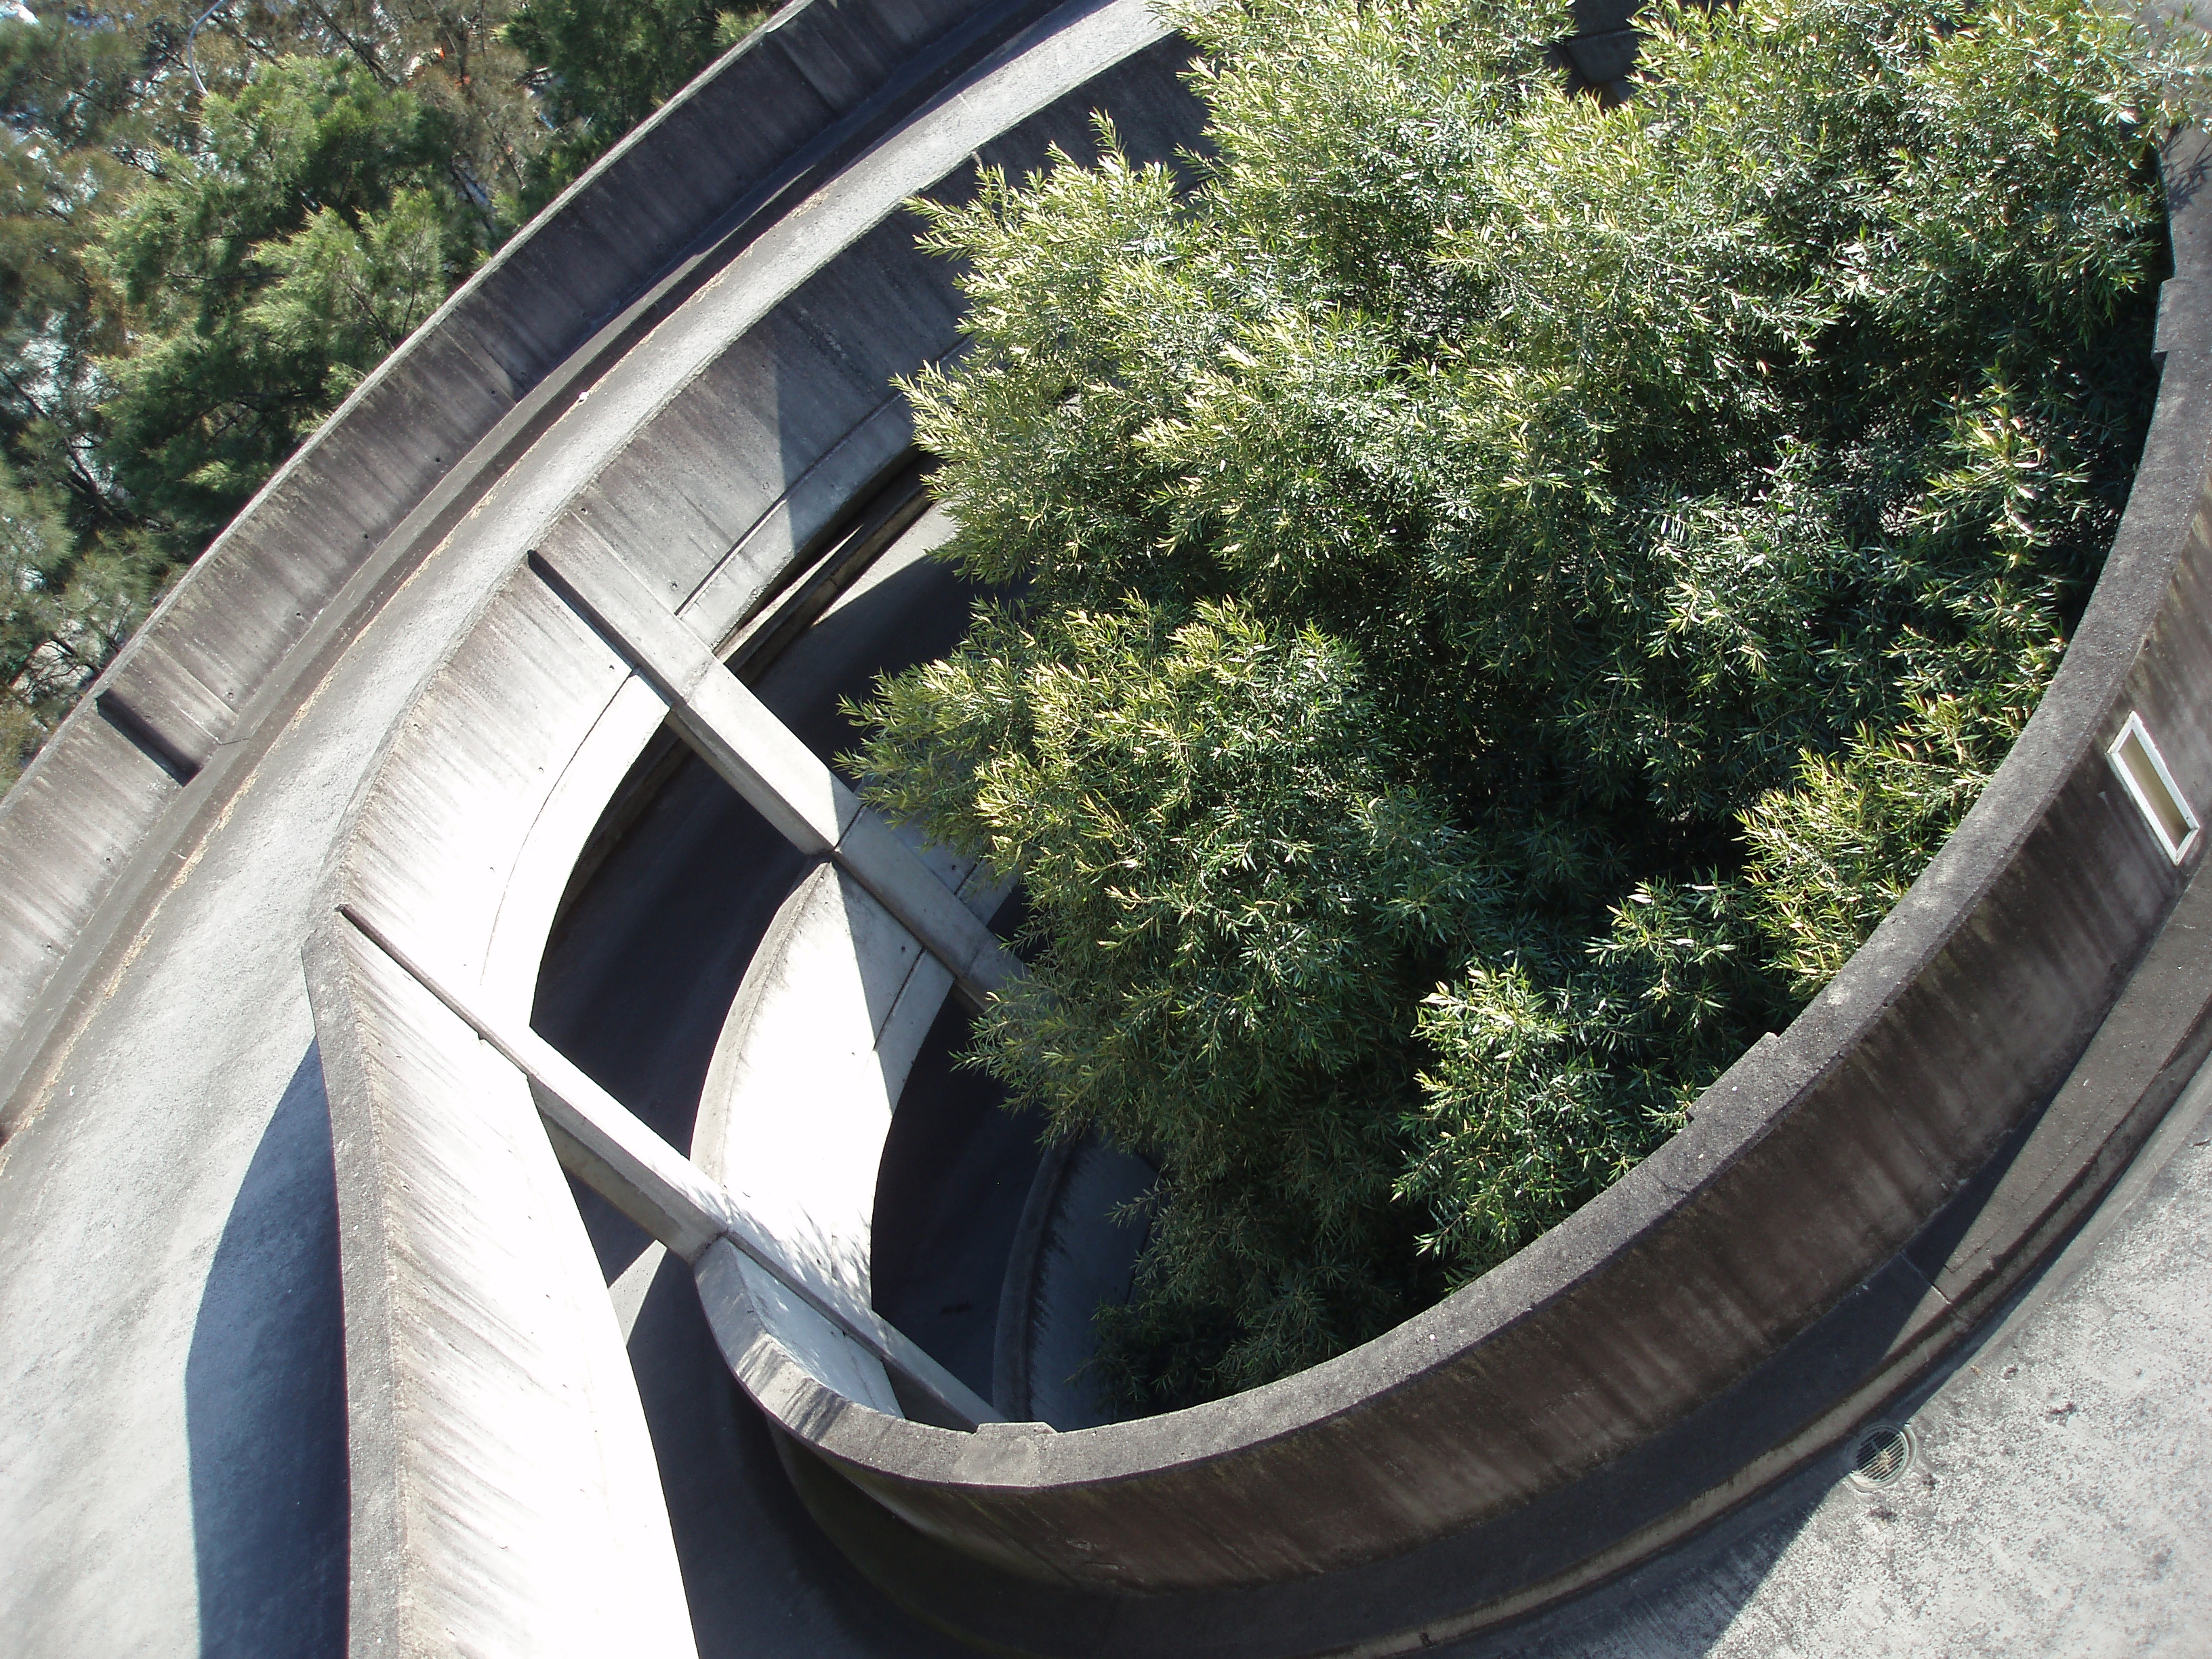 a spiral concrete carpark ramp